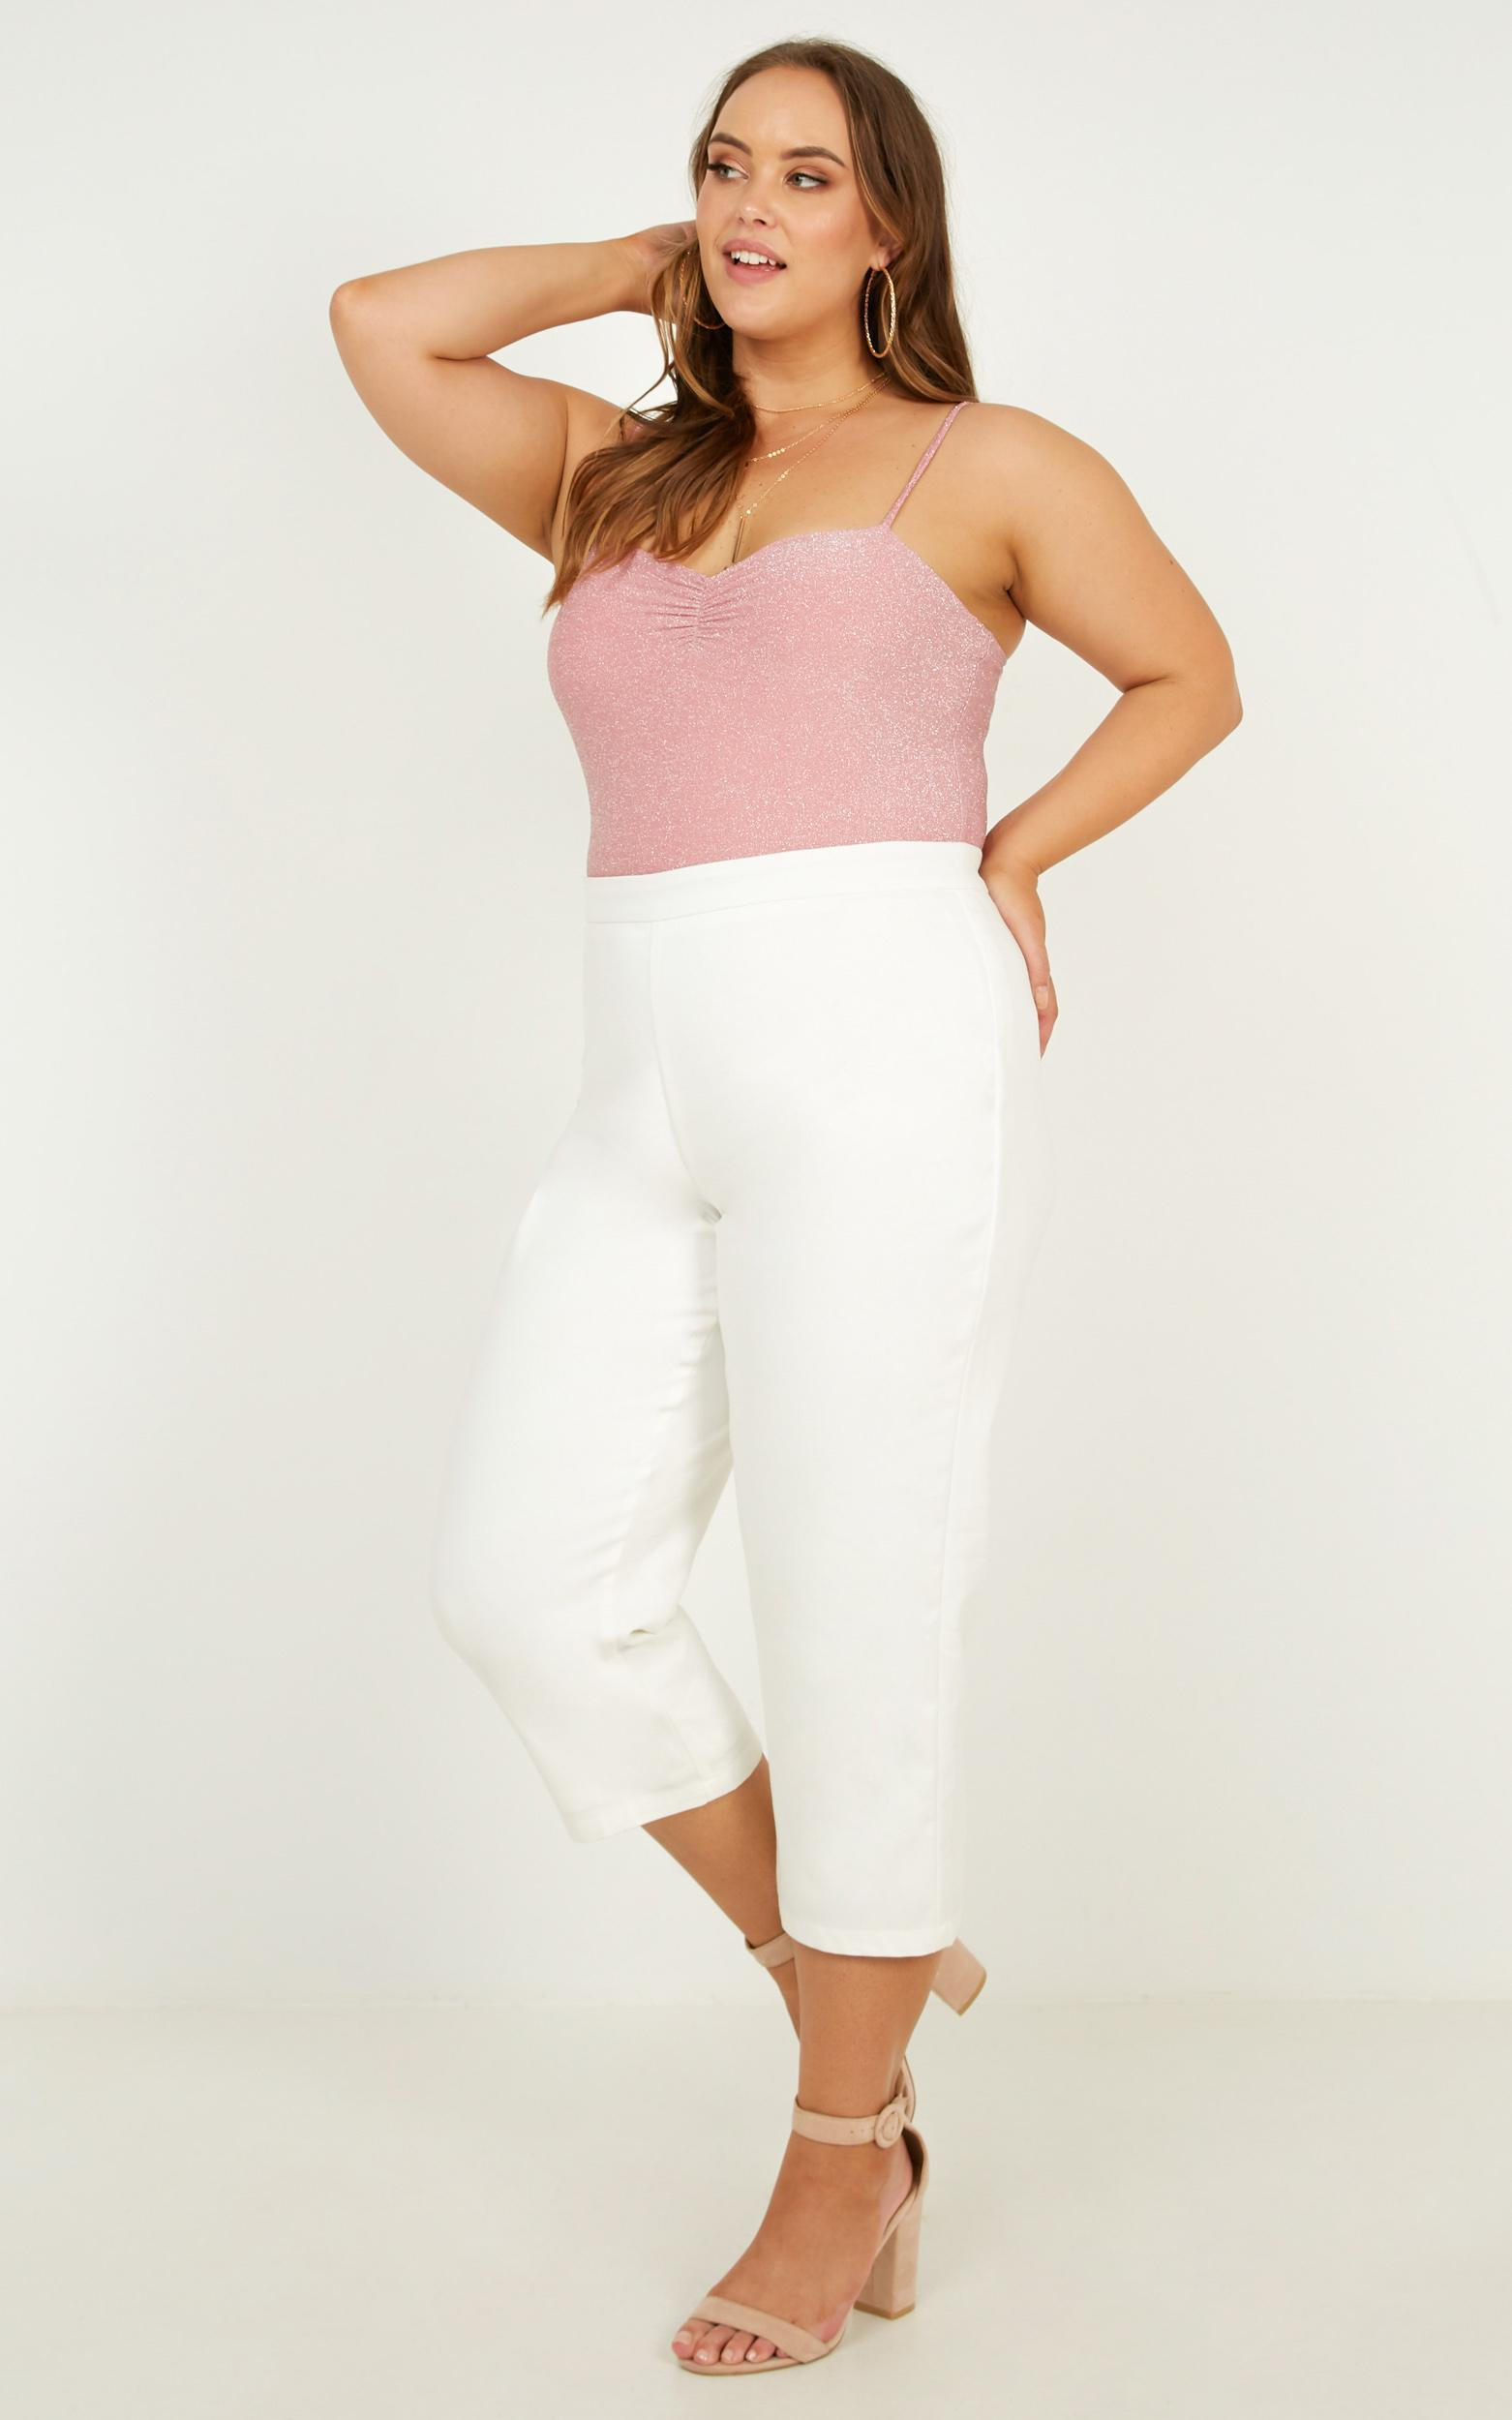 Not My Day bodysuit In pink - 20 (XXXXL), Pink, hi-res image number null